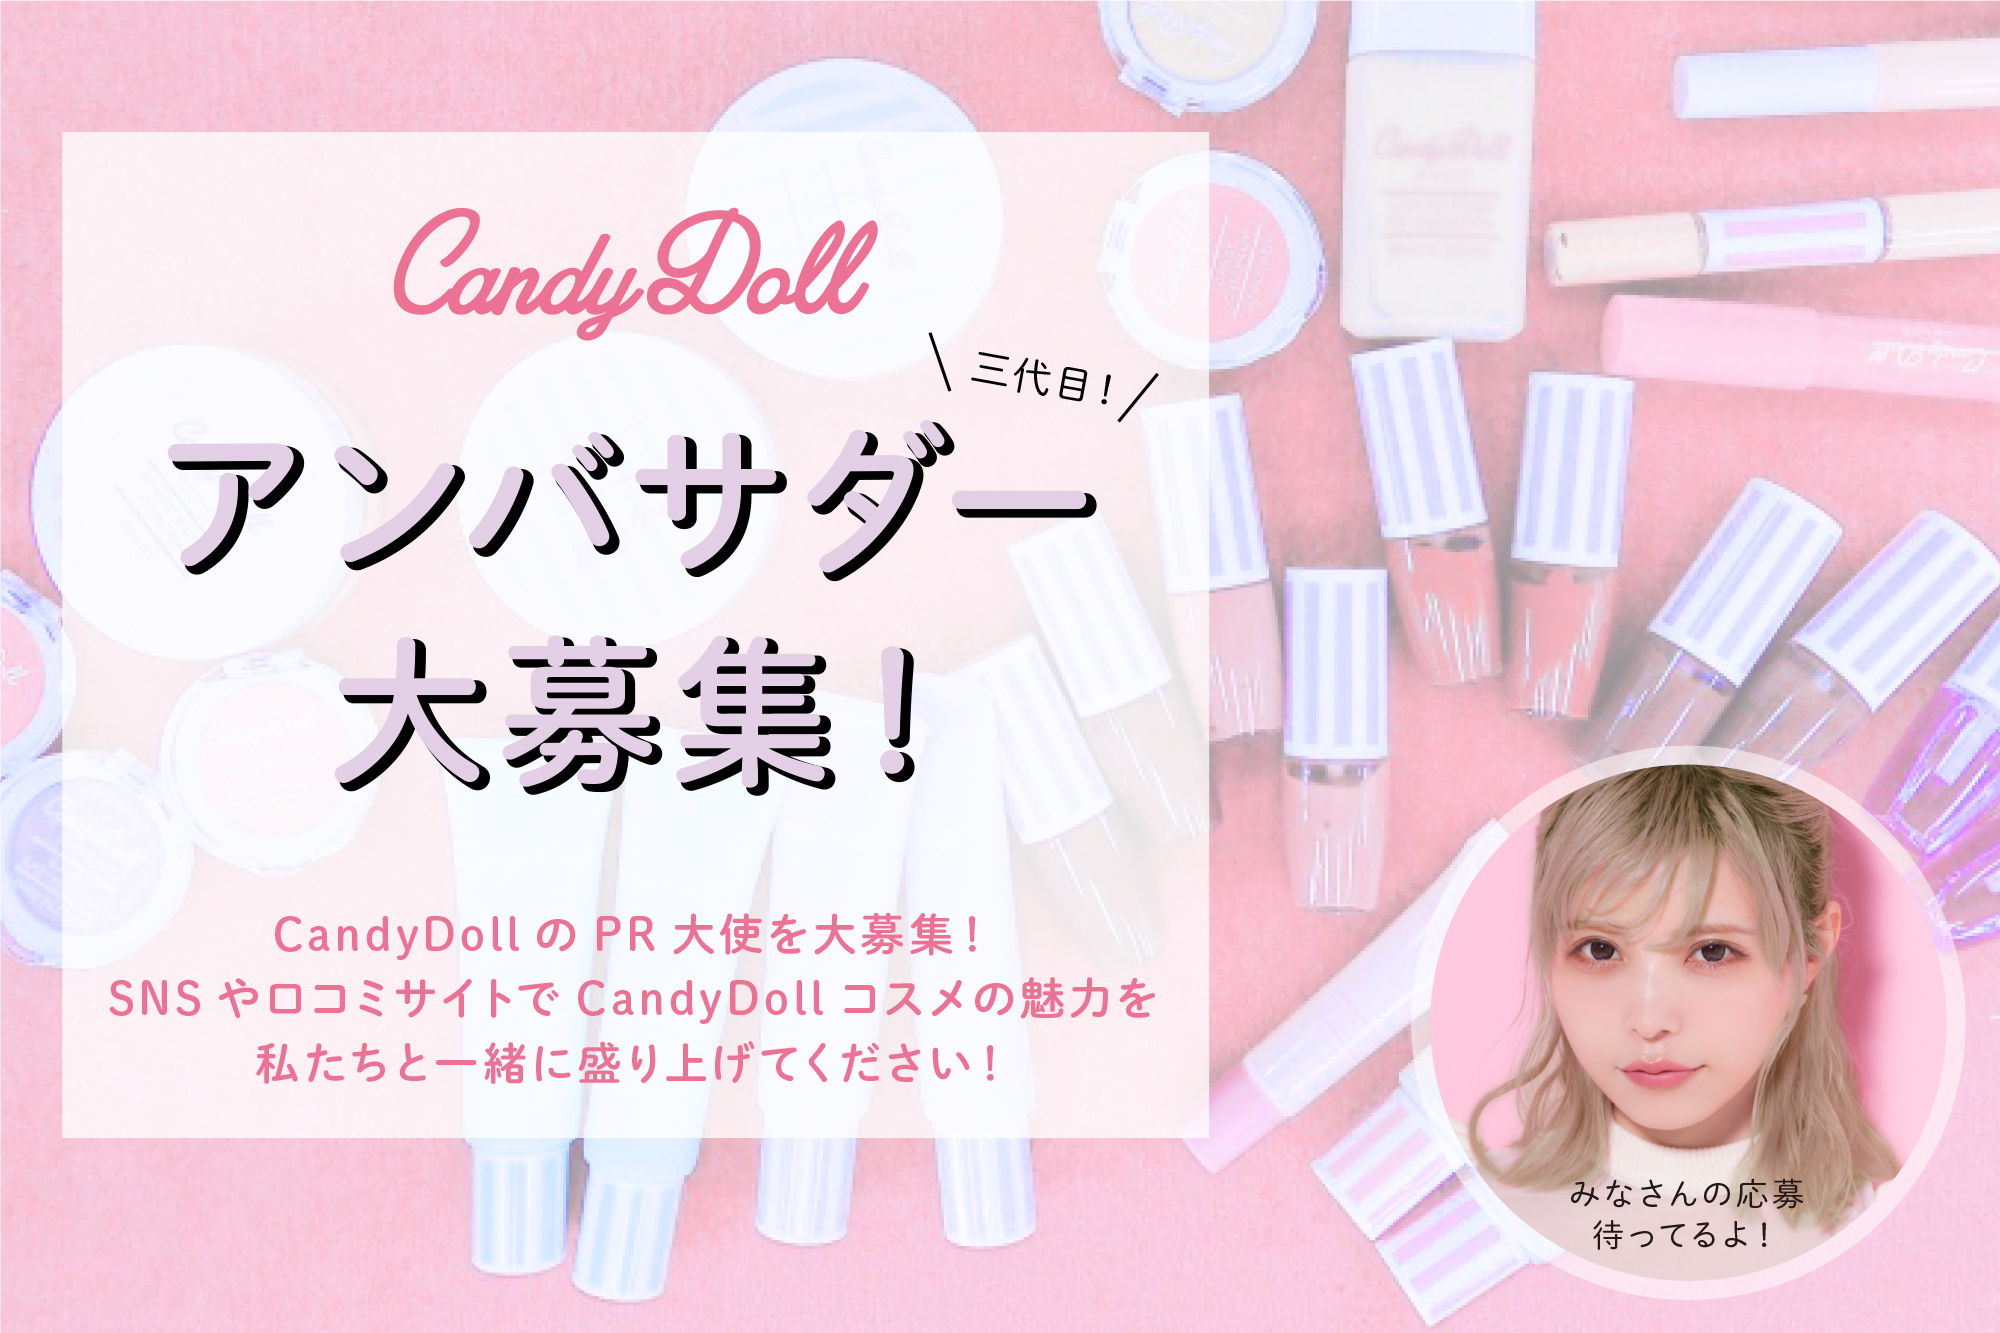 ☆CandyDollアンバサダー2019大募集☆